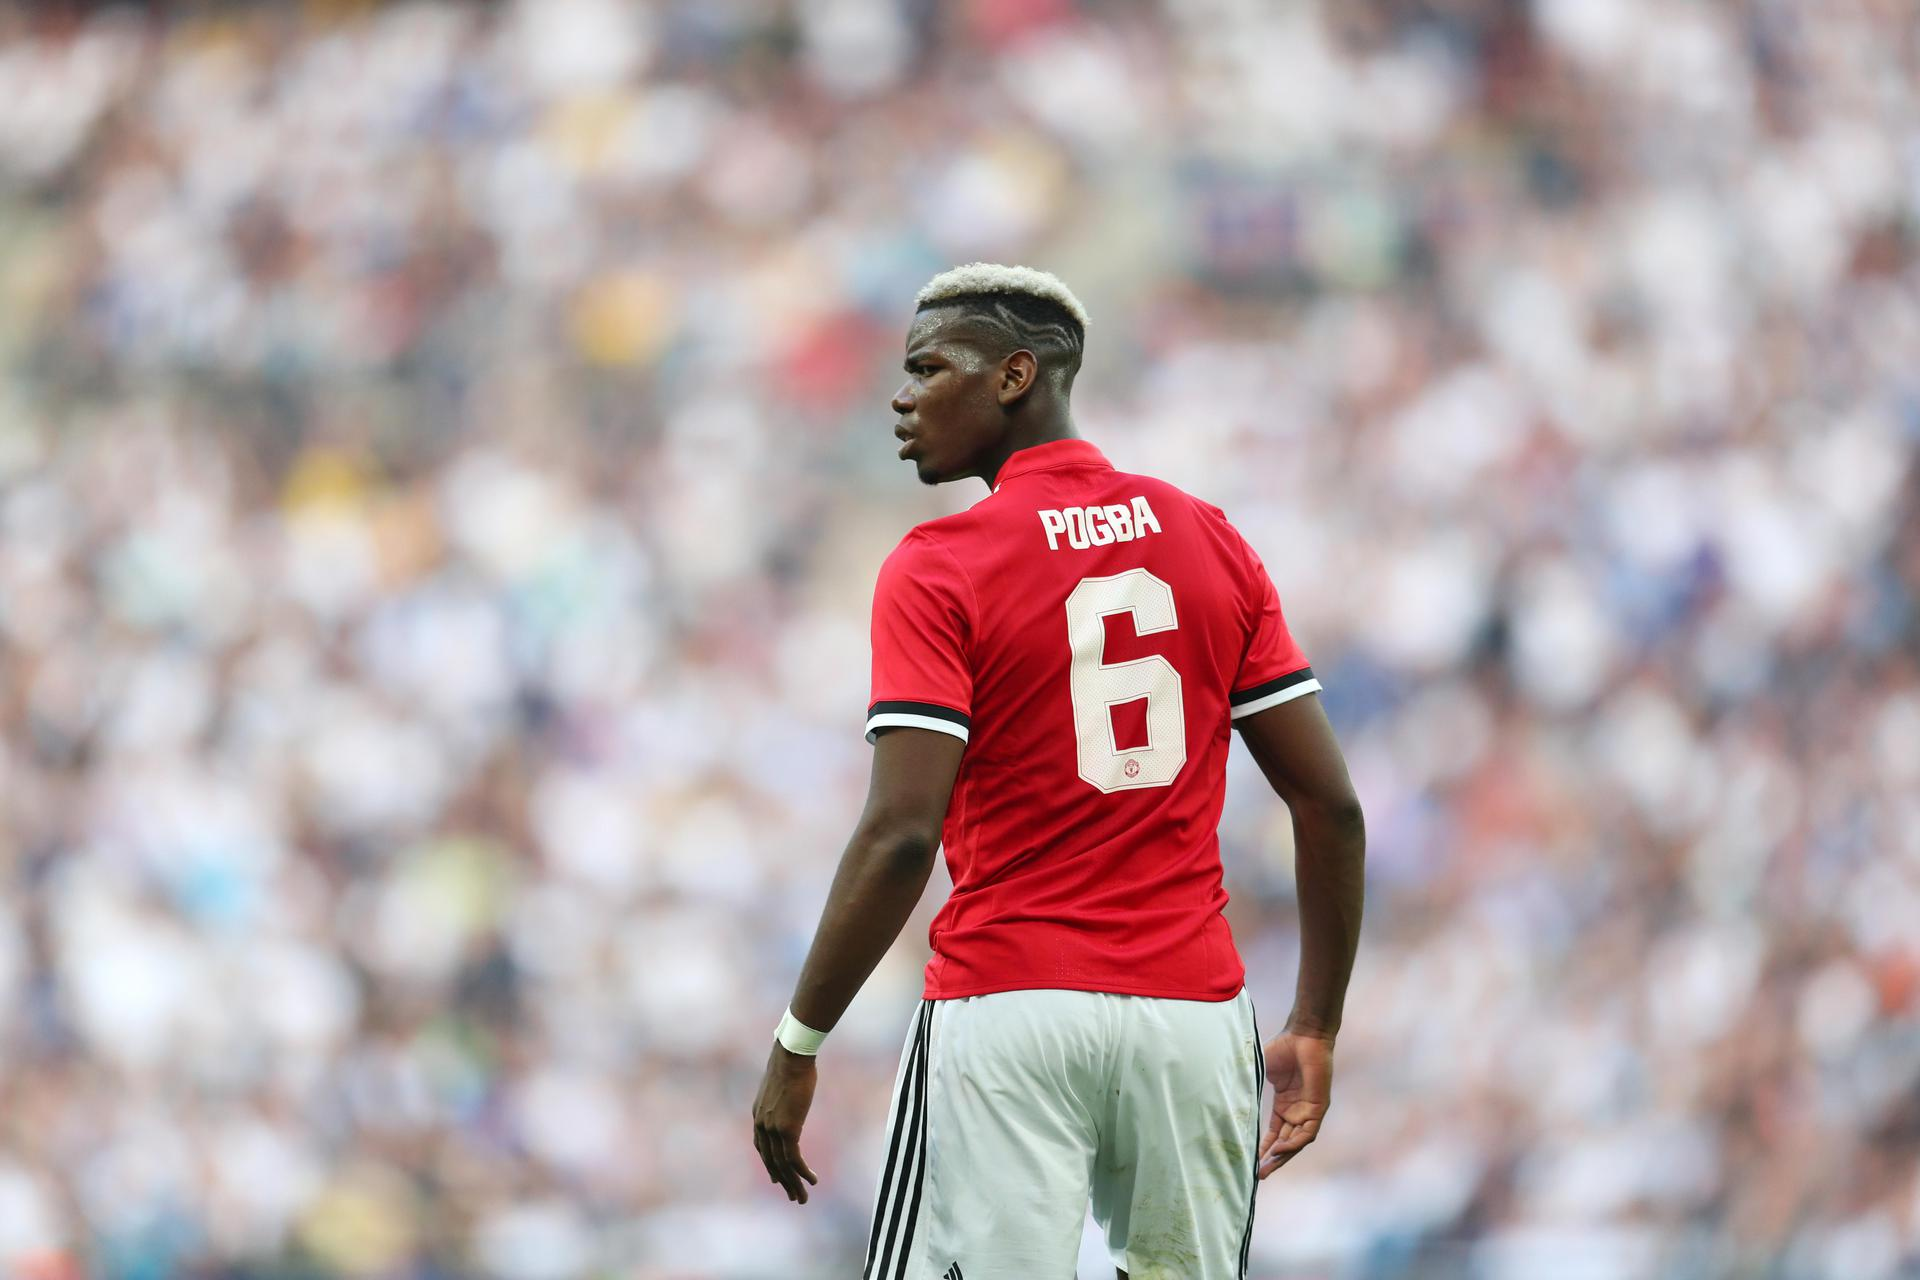 Paul Pogba en acción